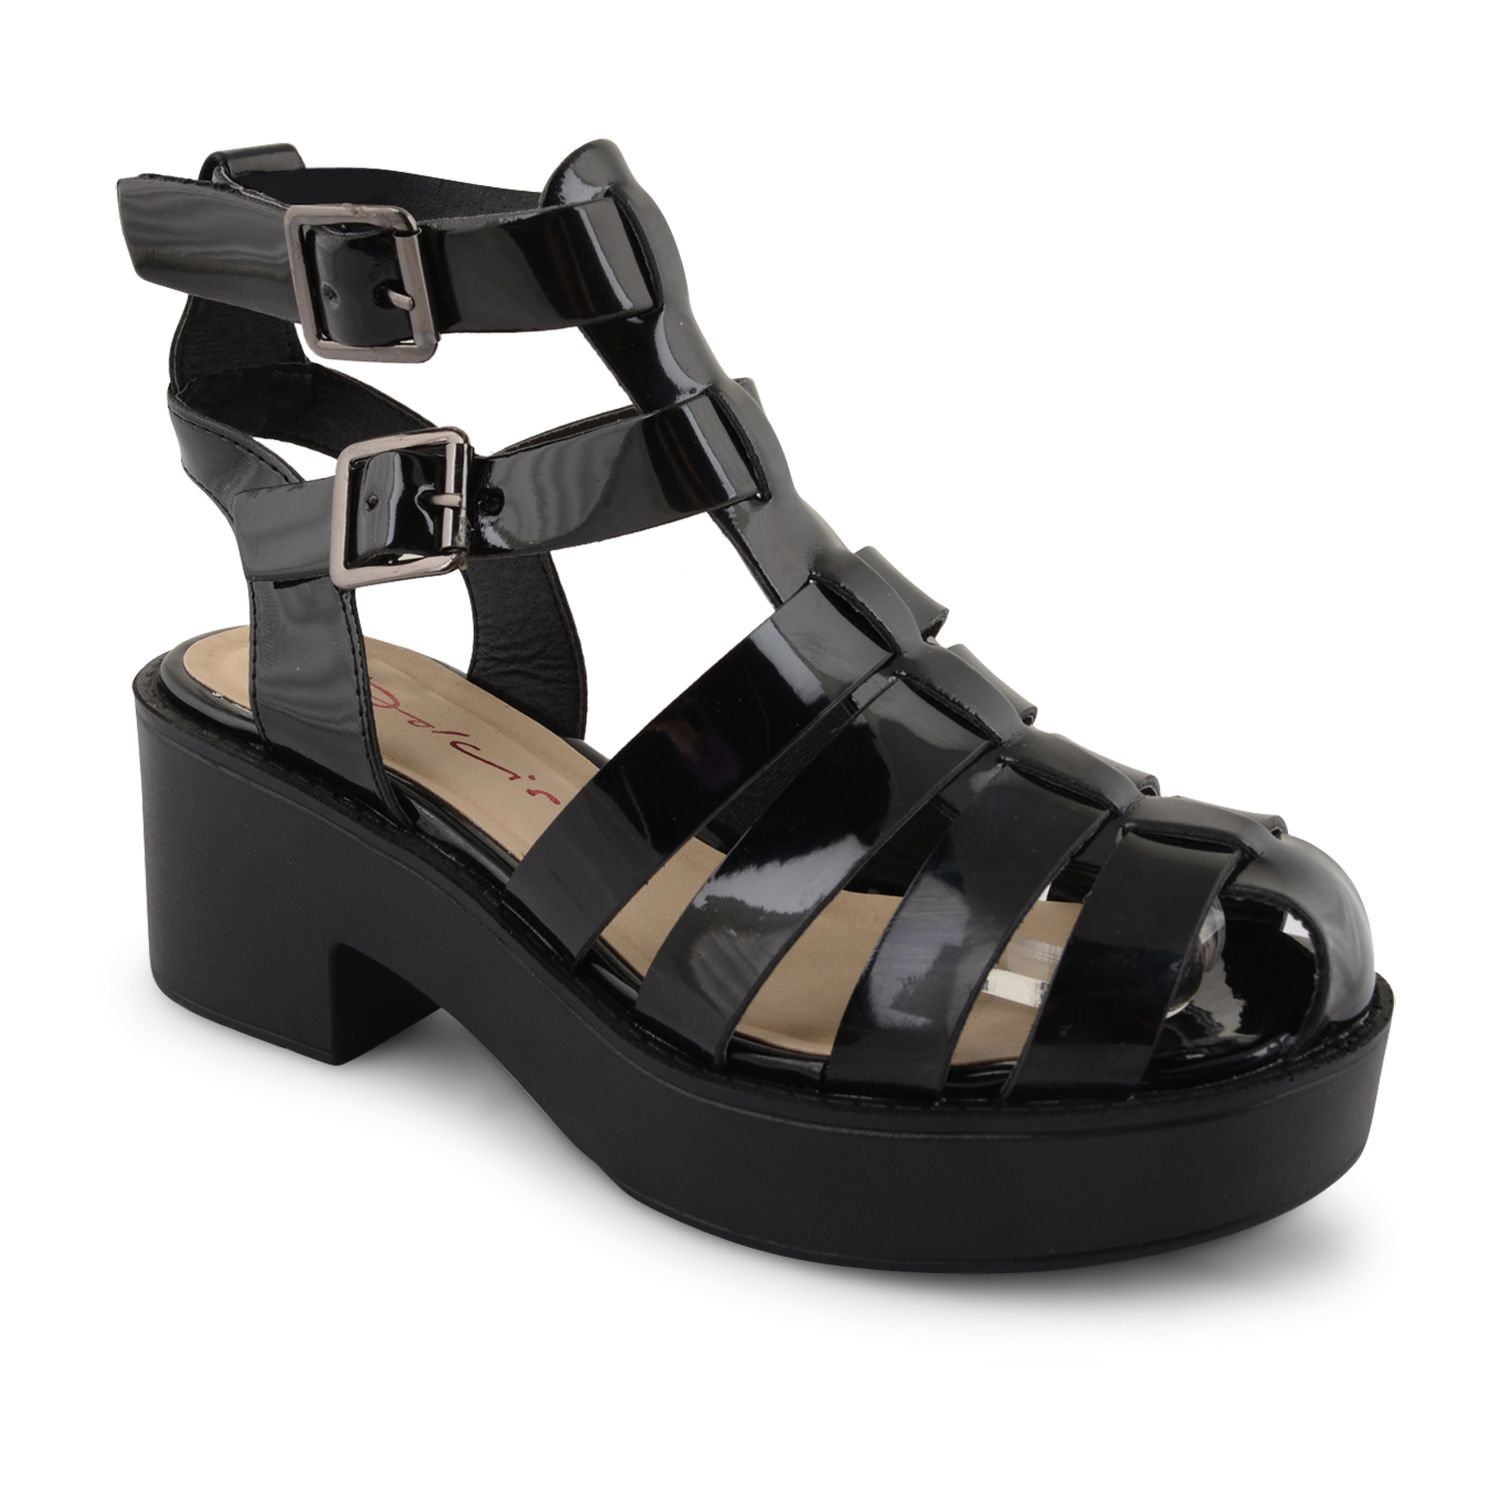 3b1ae17fd6d NEW-LADIES-DOLCIS-ANKLE-STRAPPY-SANDALS-WOMENS-CUT-OUT-PLATFORM ...